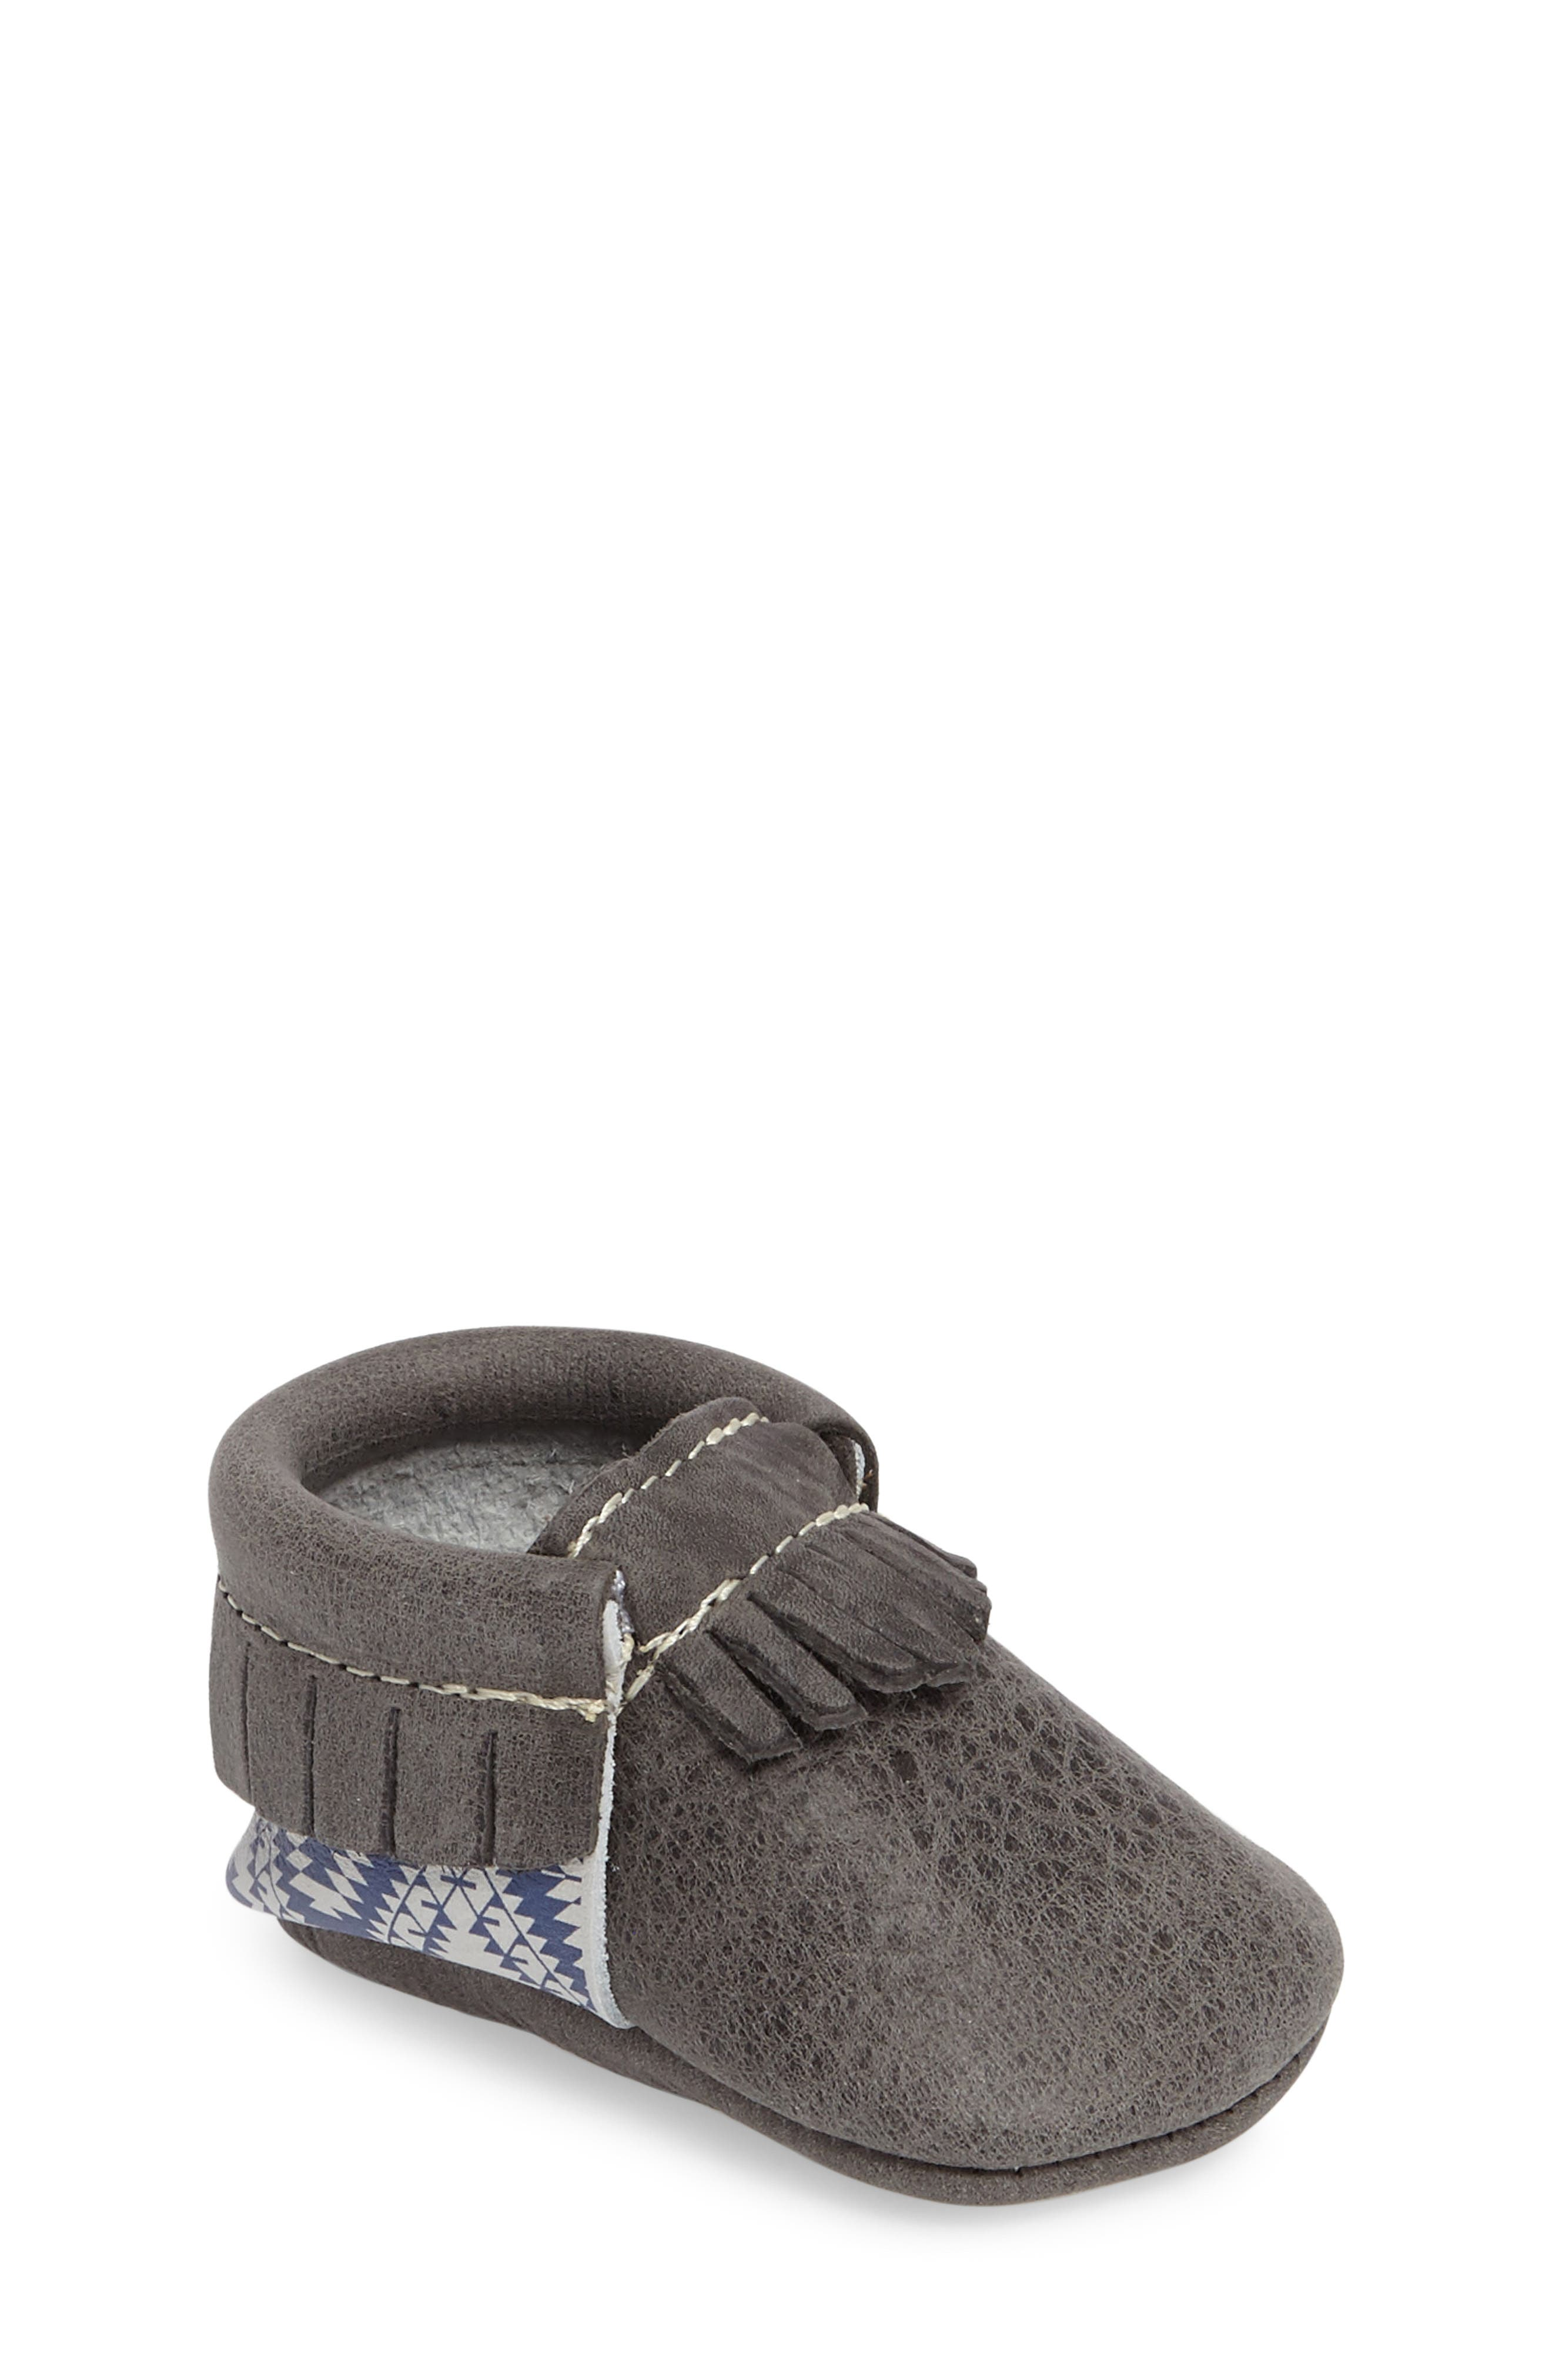 Leather Moccasin,                             Main thumbnail 1, color,                             Dark Grey Leather